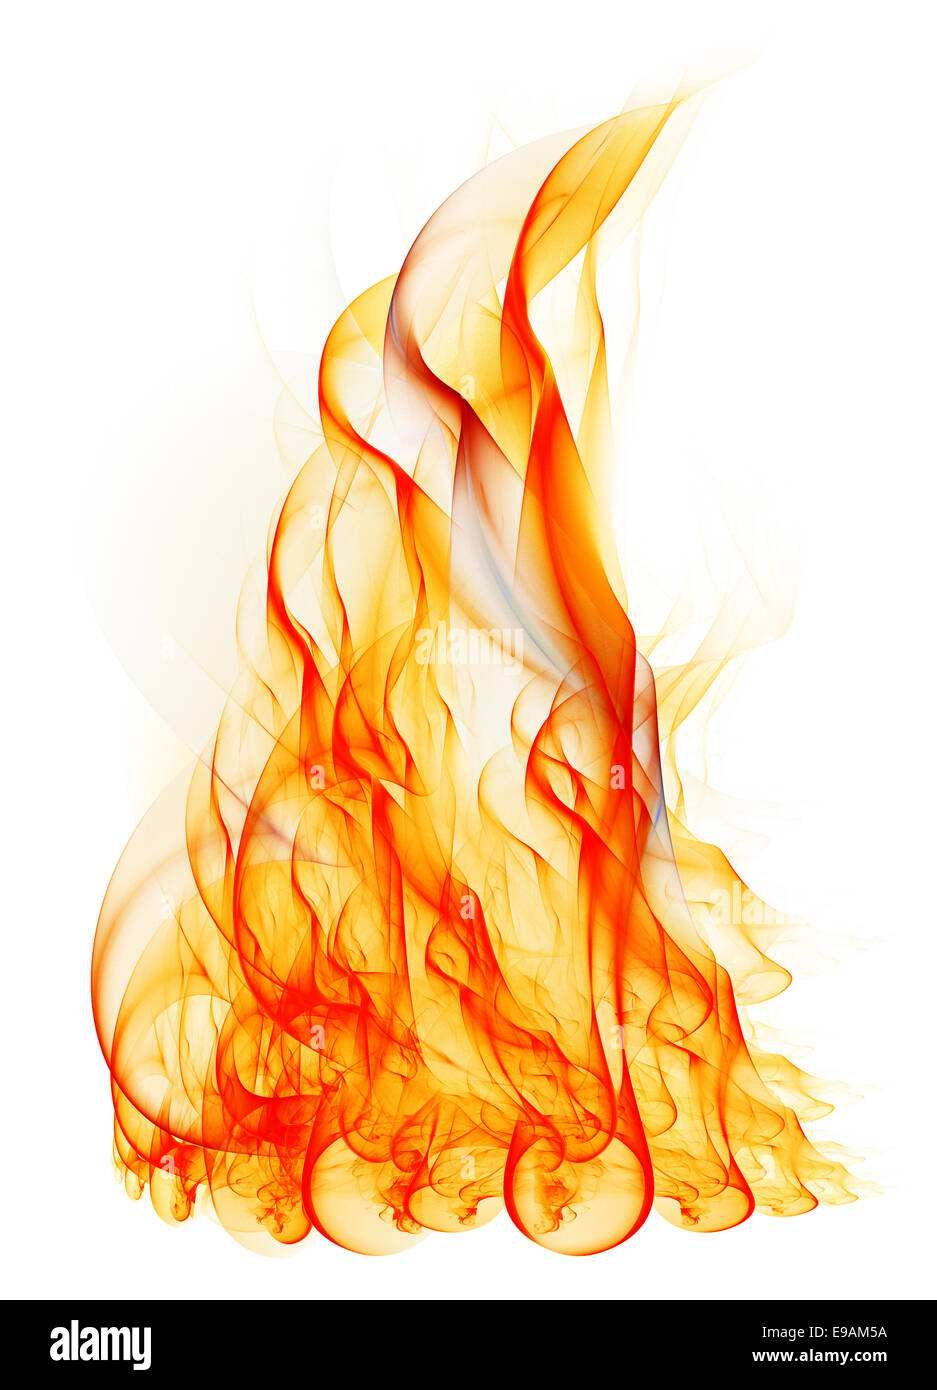 fire on white background flame fractal fire isolated on white background stock 1226